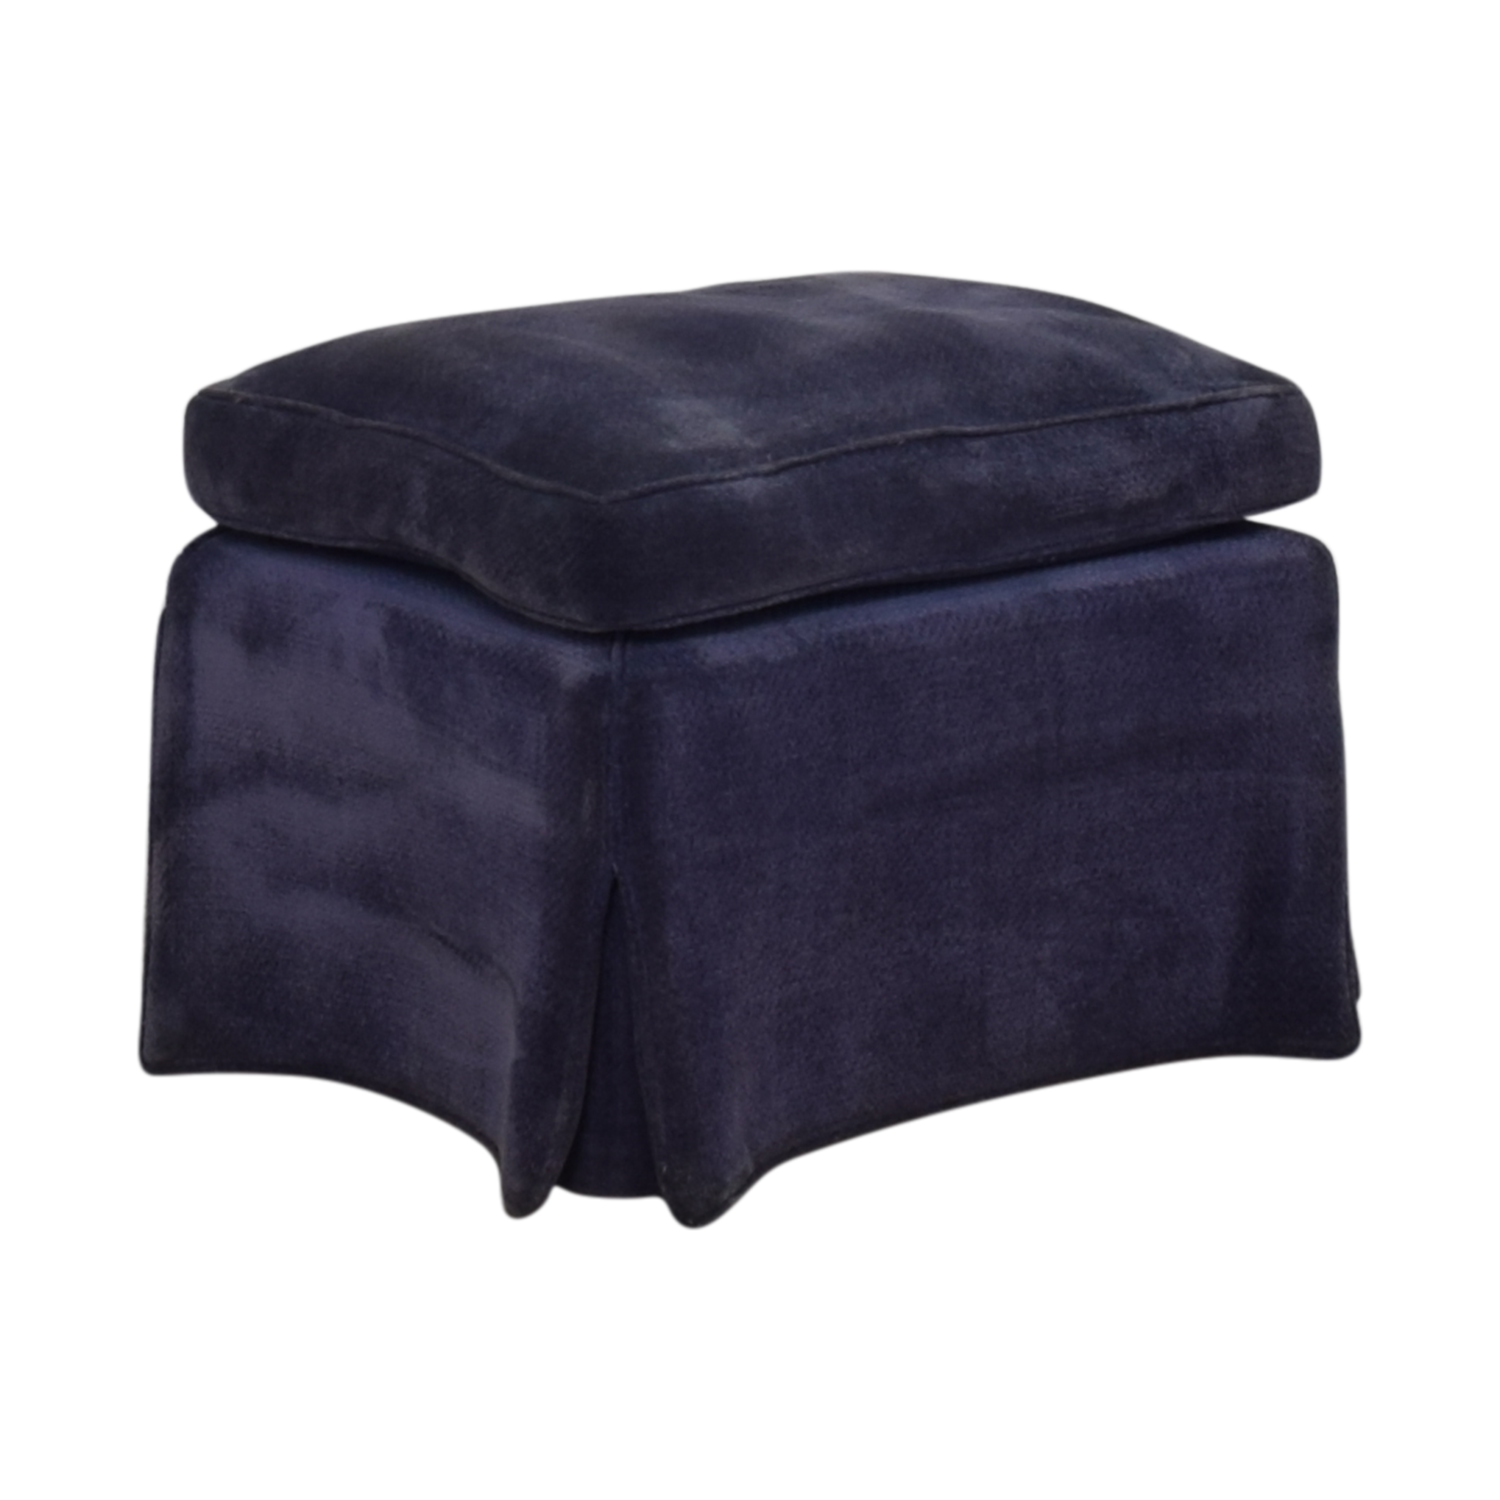 Rose Tarlow Ottoman / Chairs